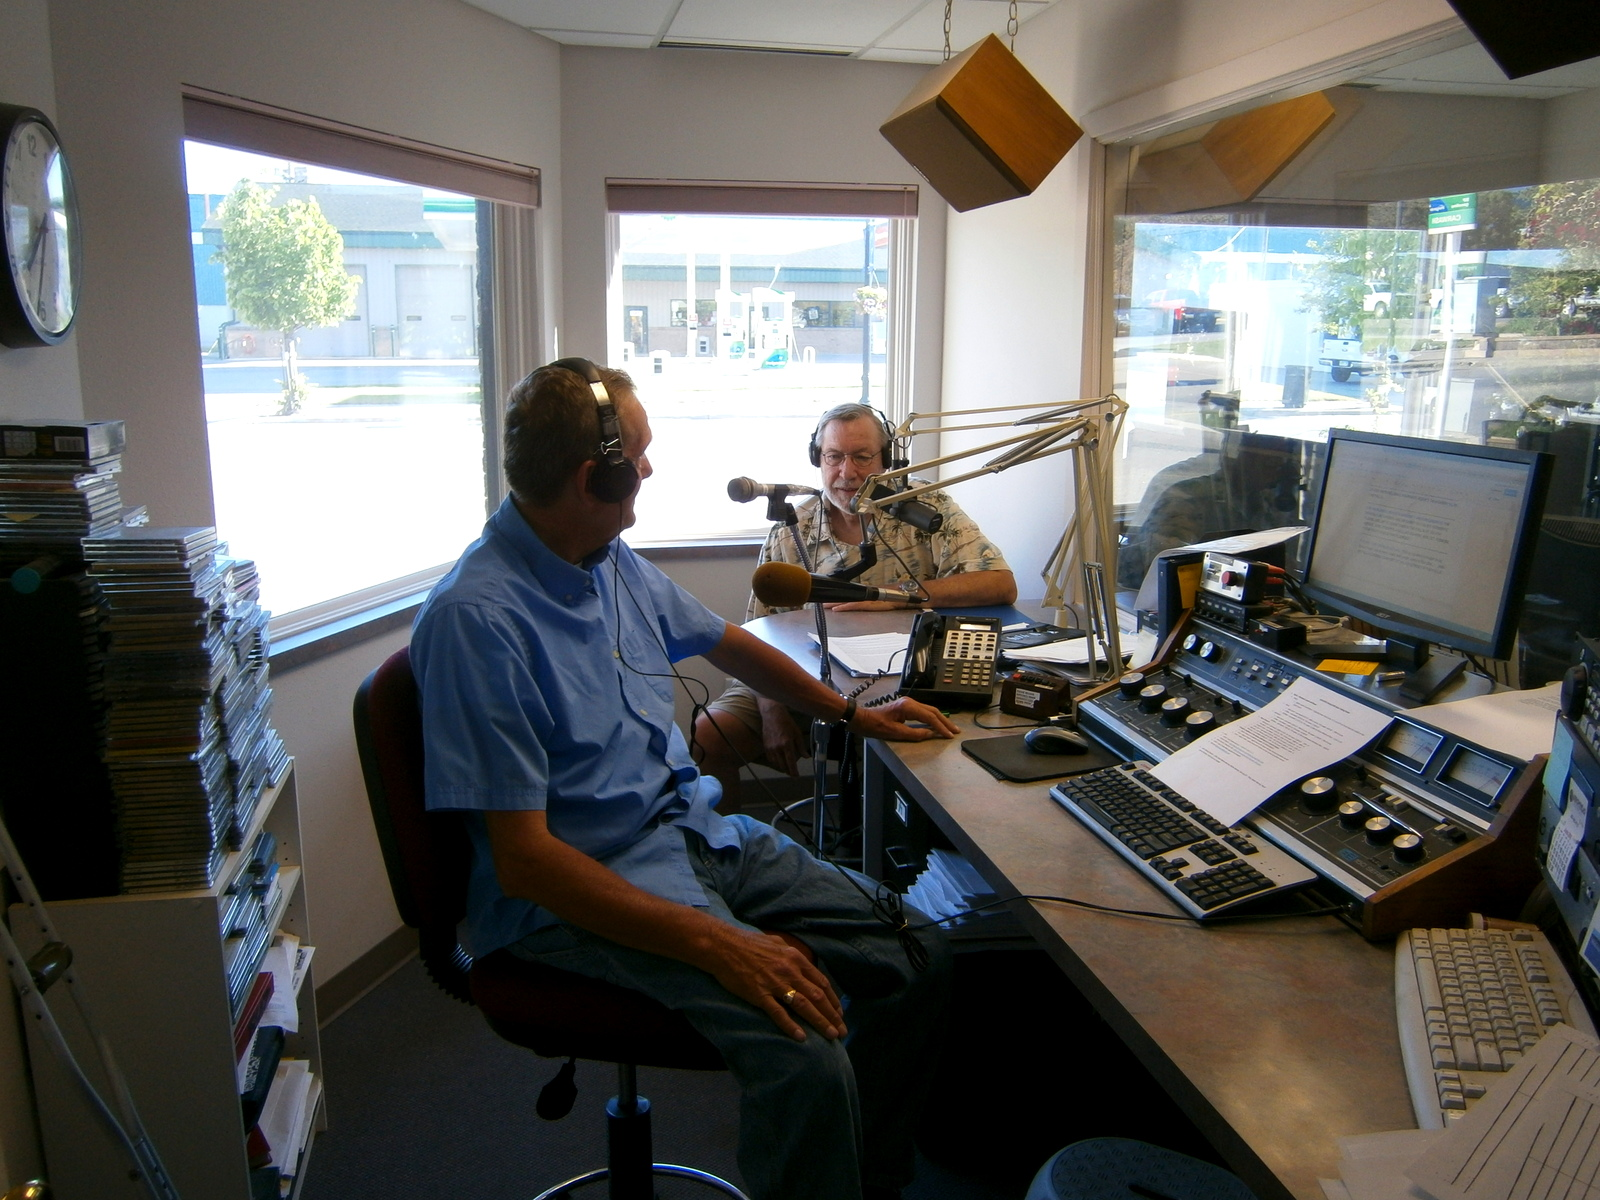 Jerry Franzen (left), KGHS Morning Host and Nolan Baratono, IRLWWB Member talk about water levels of Rainy and Namakan Lakes.  A board member participants in a 5-10 minute broadcast on water levels and flows at 7:30 a.m. on Tuesdays from April through June, and as conditions warrant.